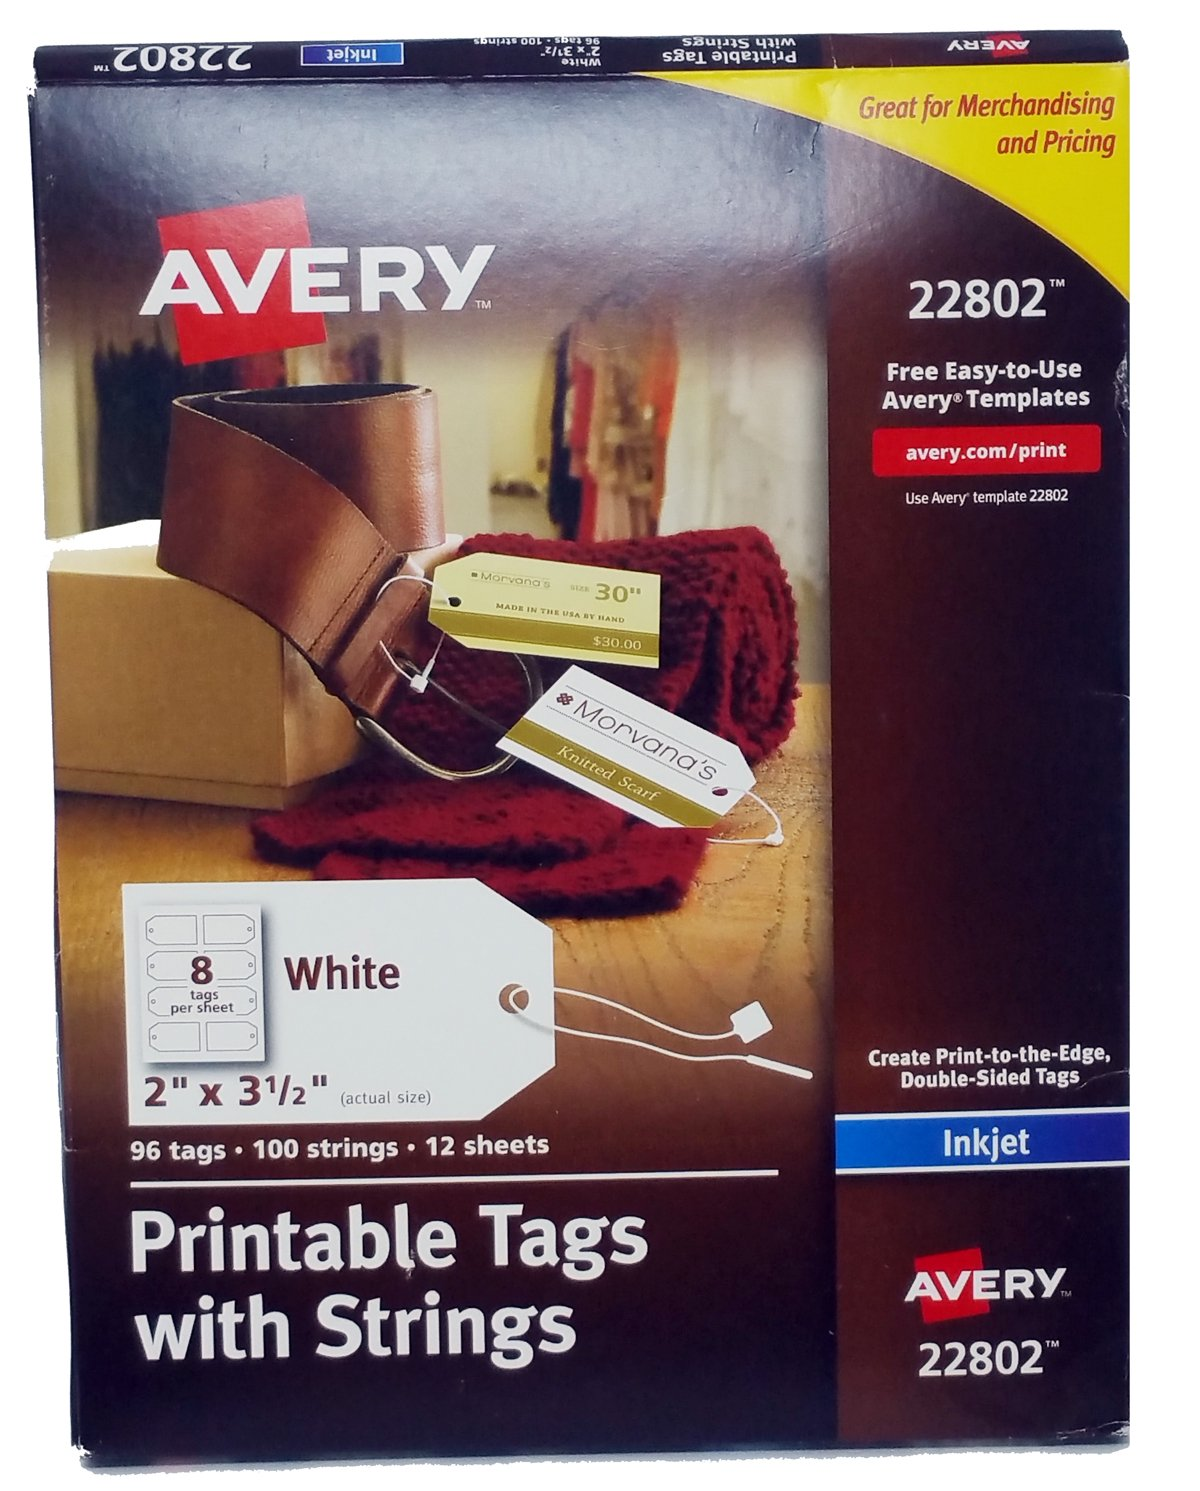 photograph relating to Printable Tags With Strings referred to as Avery Printable Tags with Strings for Inkjet Printers, 2 x 3.5-Inches, Pack of 96 Tags (22802) (Open up Box)